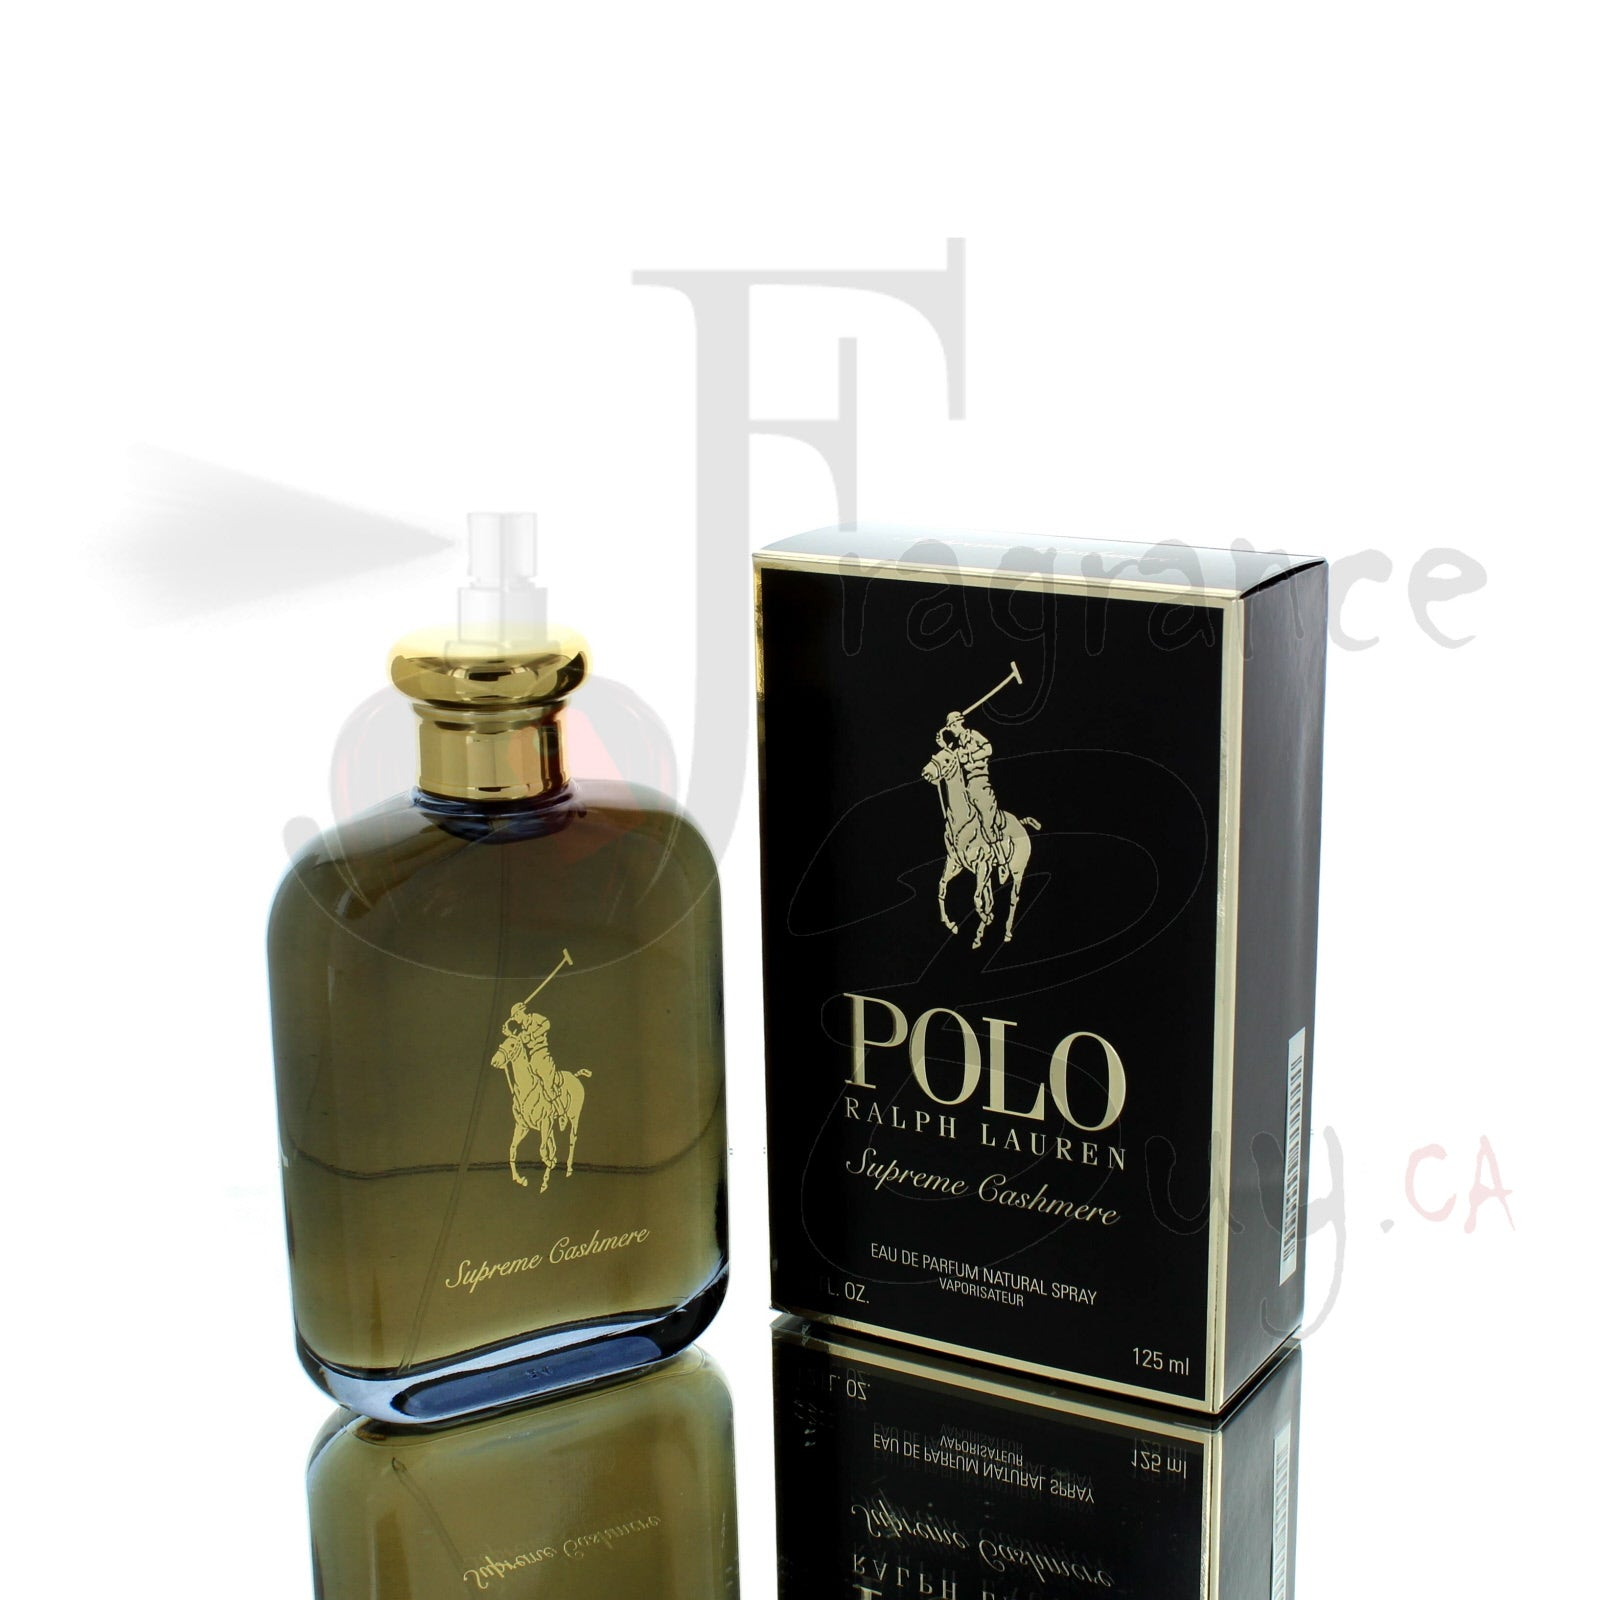 Ralph Lauren Polo Supreme Cashmere For Man